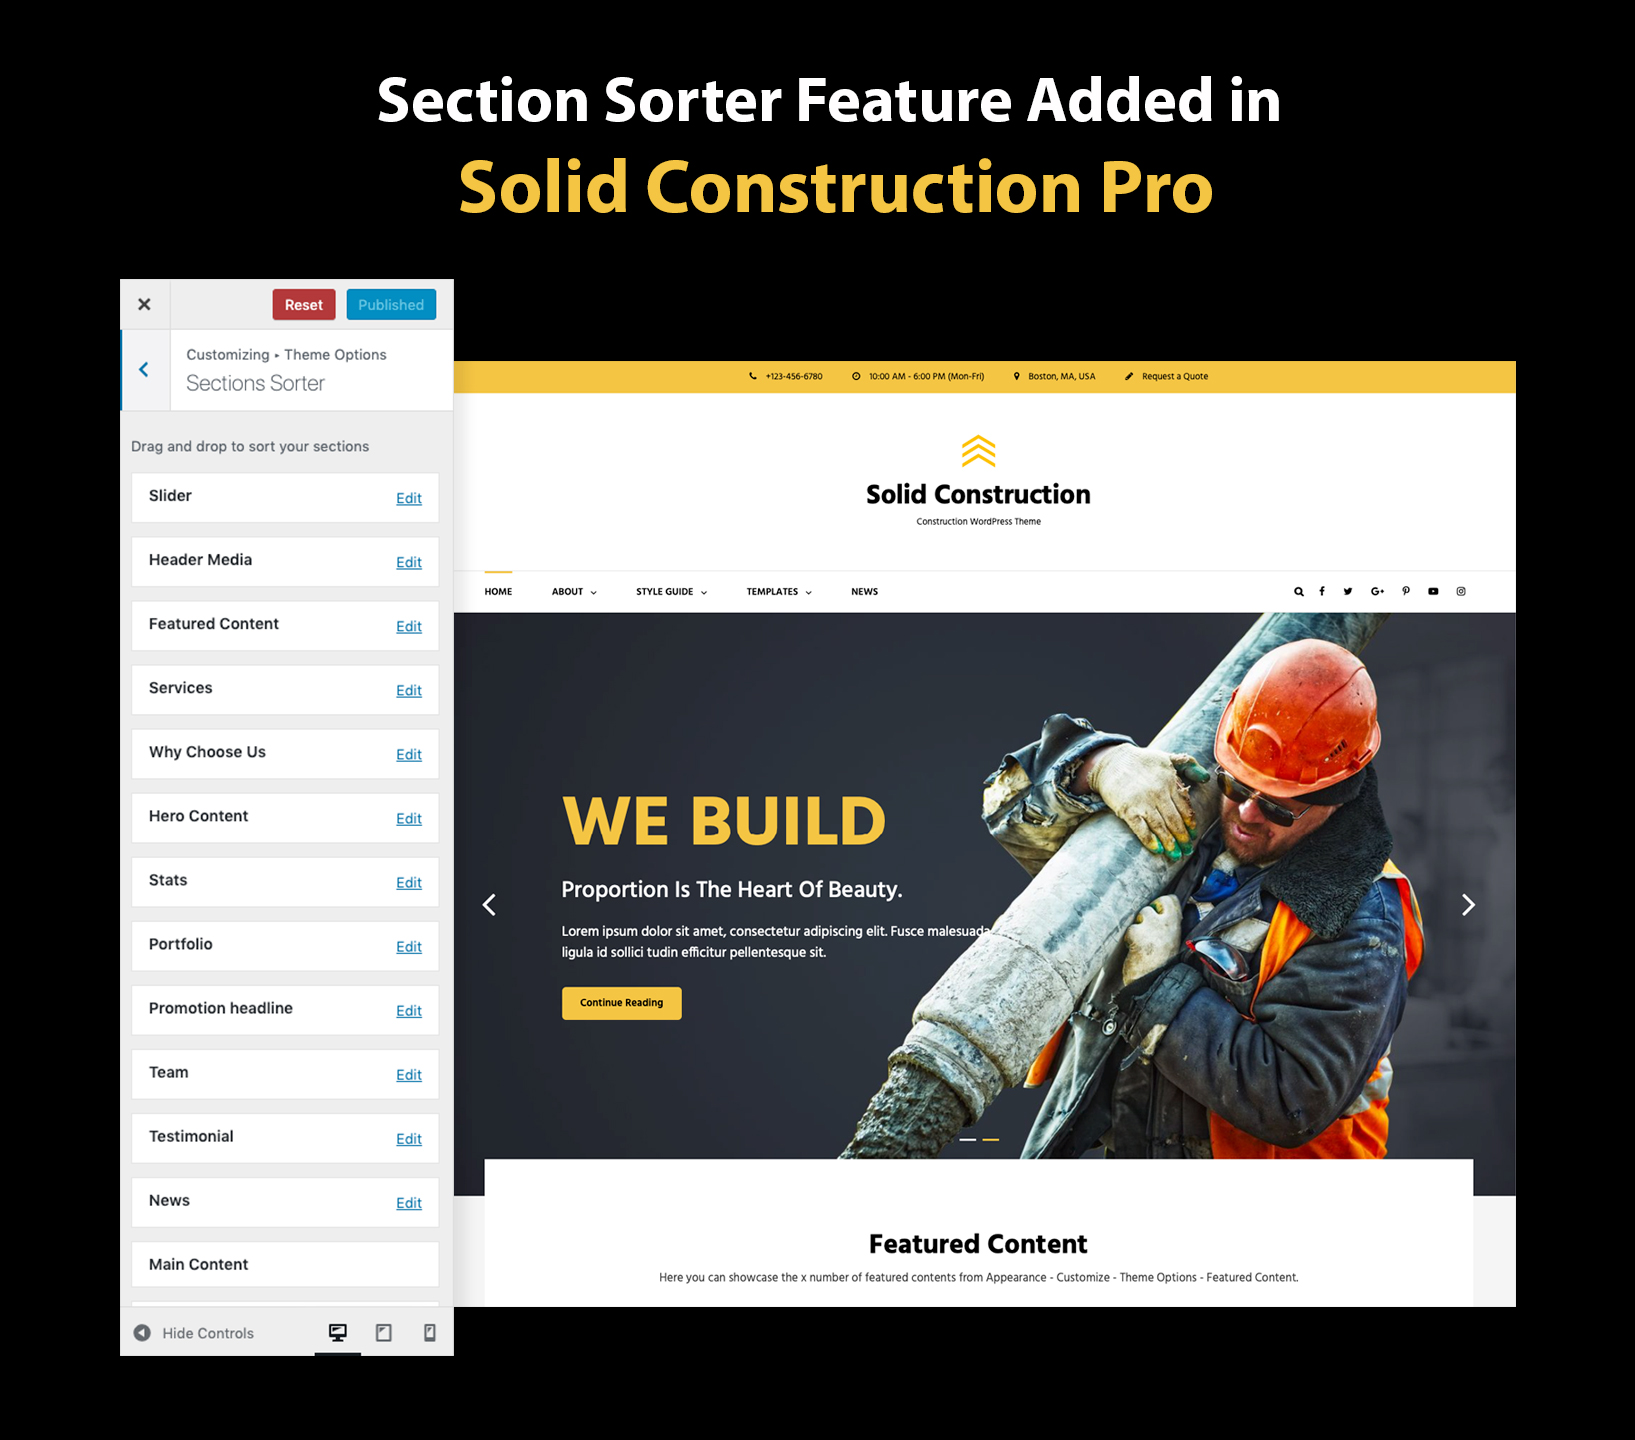 Sections Sorter Added in Solid Construction Pro